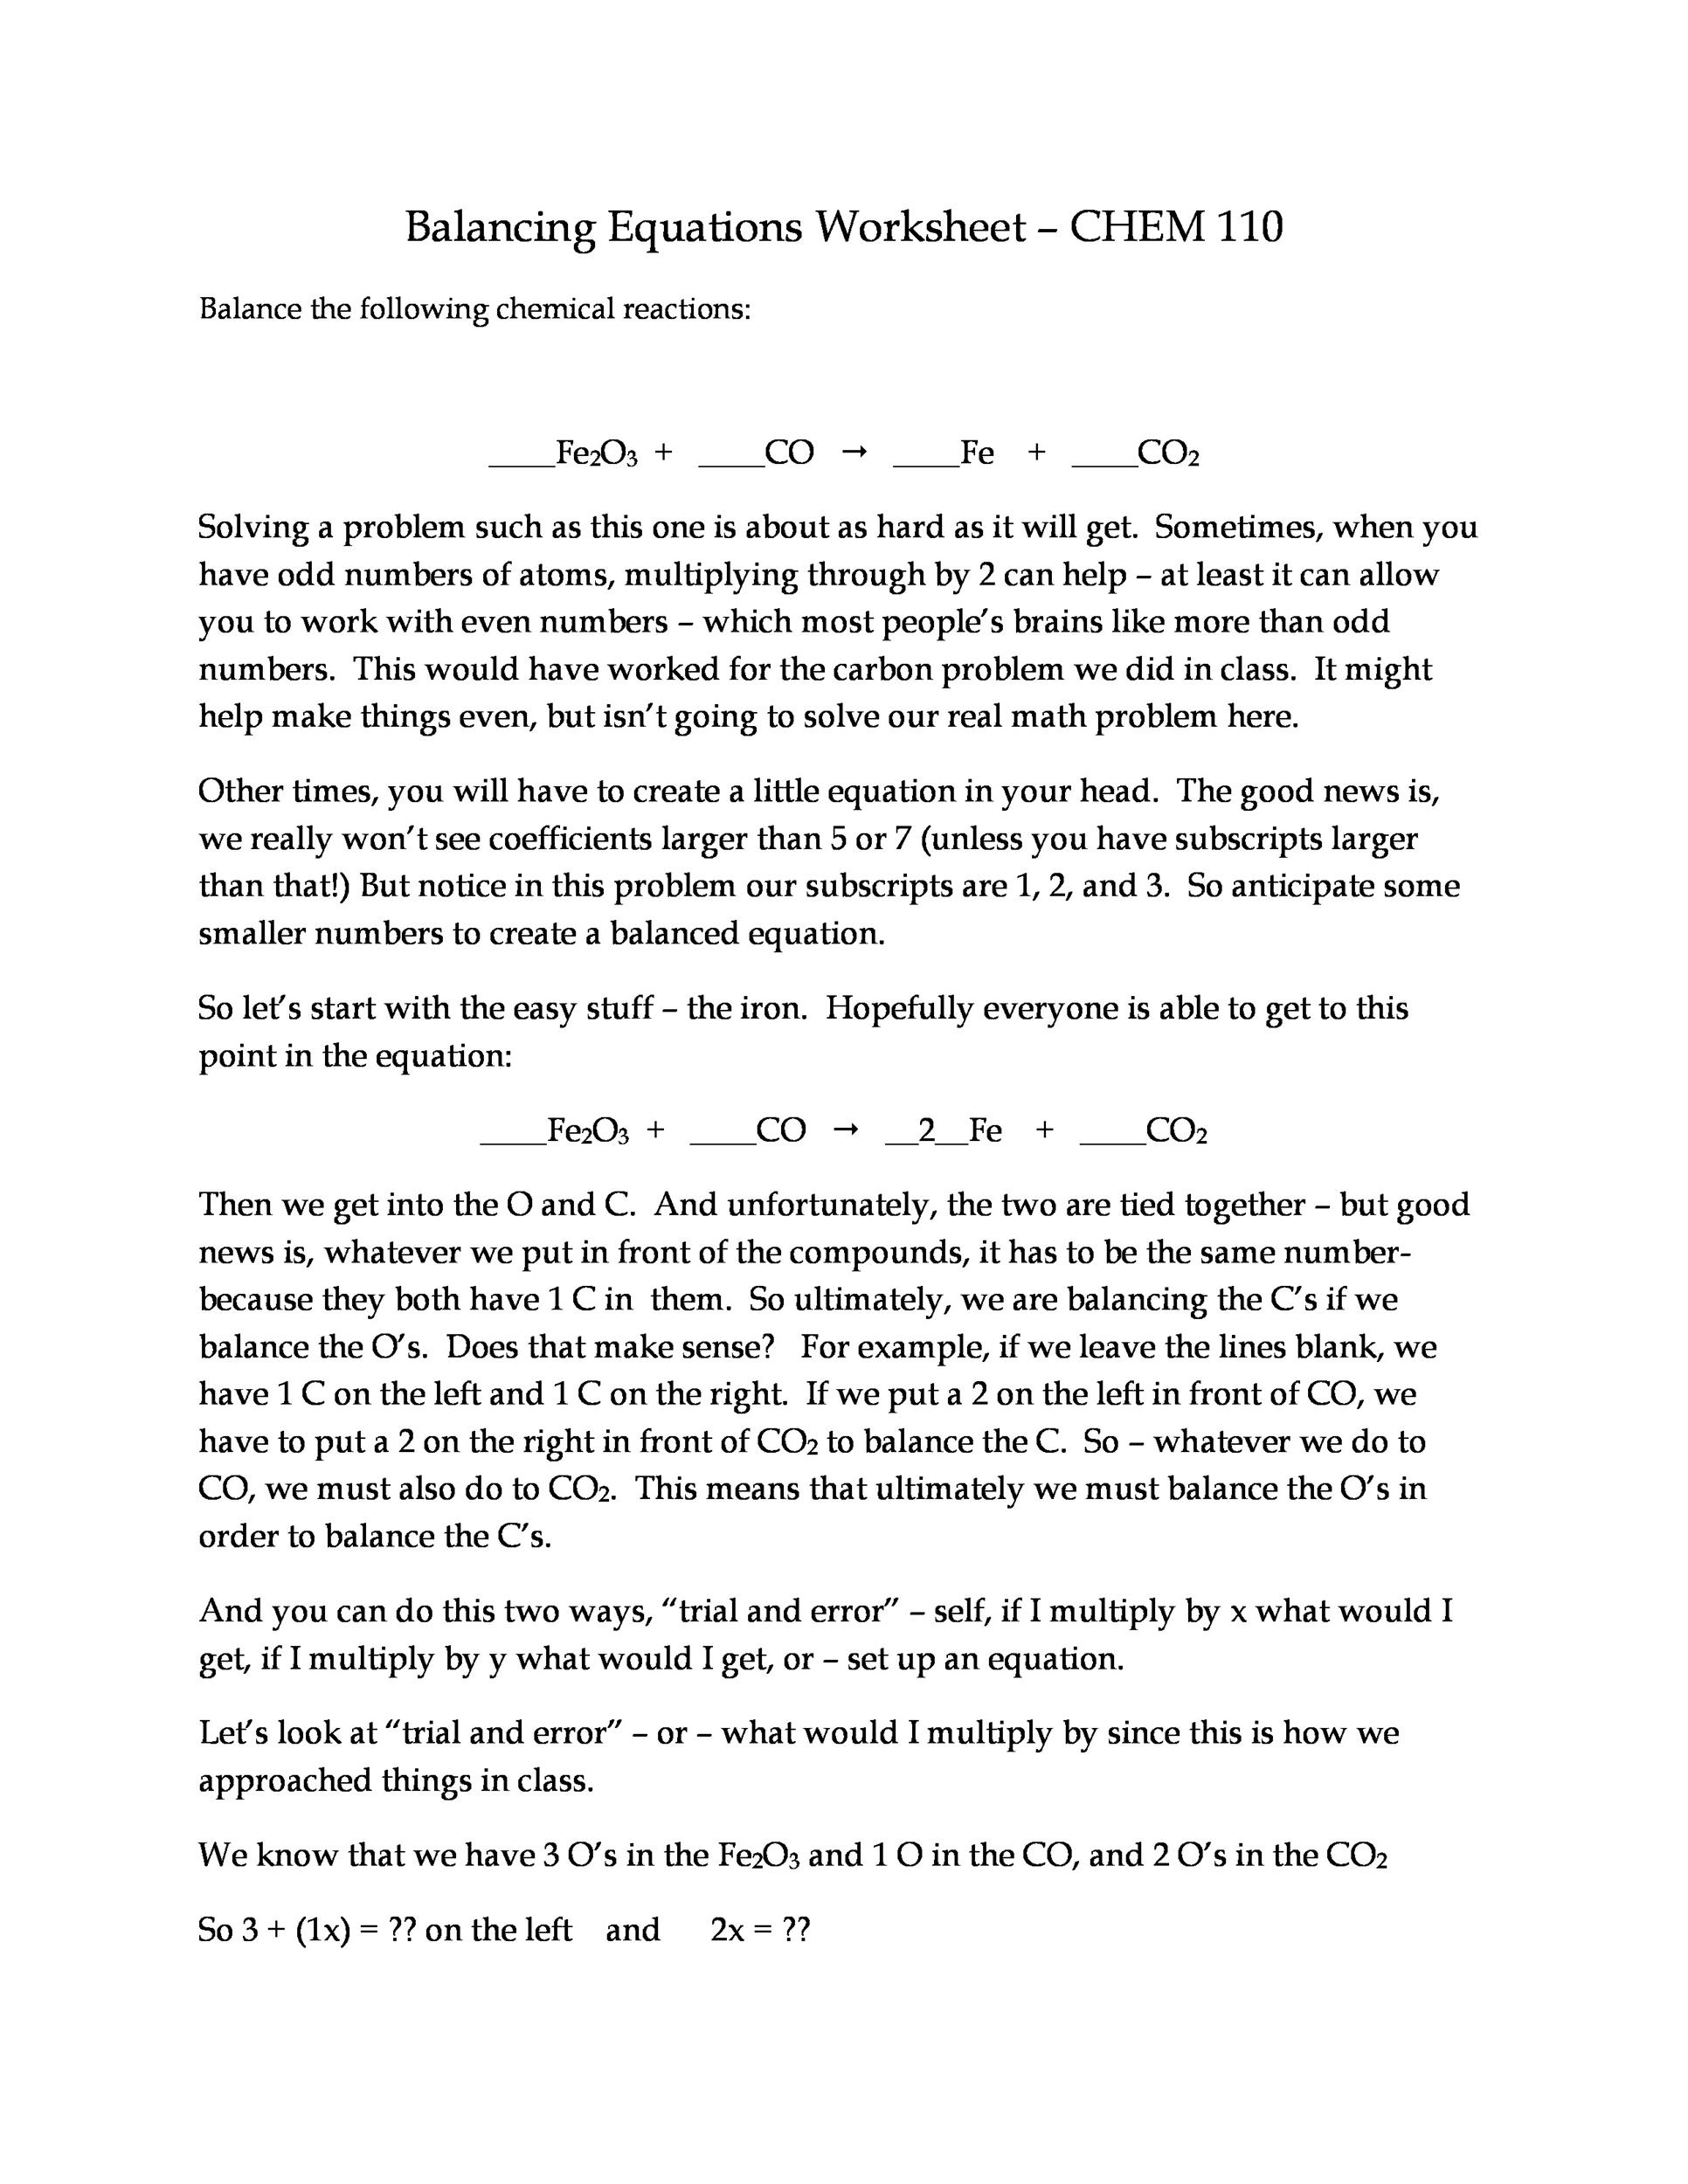 Balancing Chemical Word Equations Worksheet Answer Key Tessshebaylo – Balancing Chemical Reactions Worksheet 2